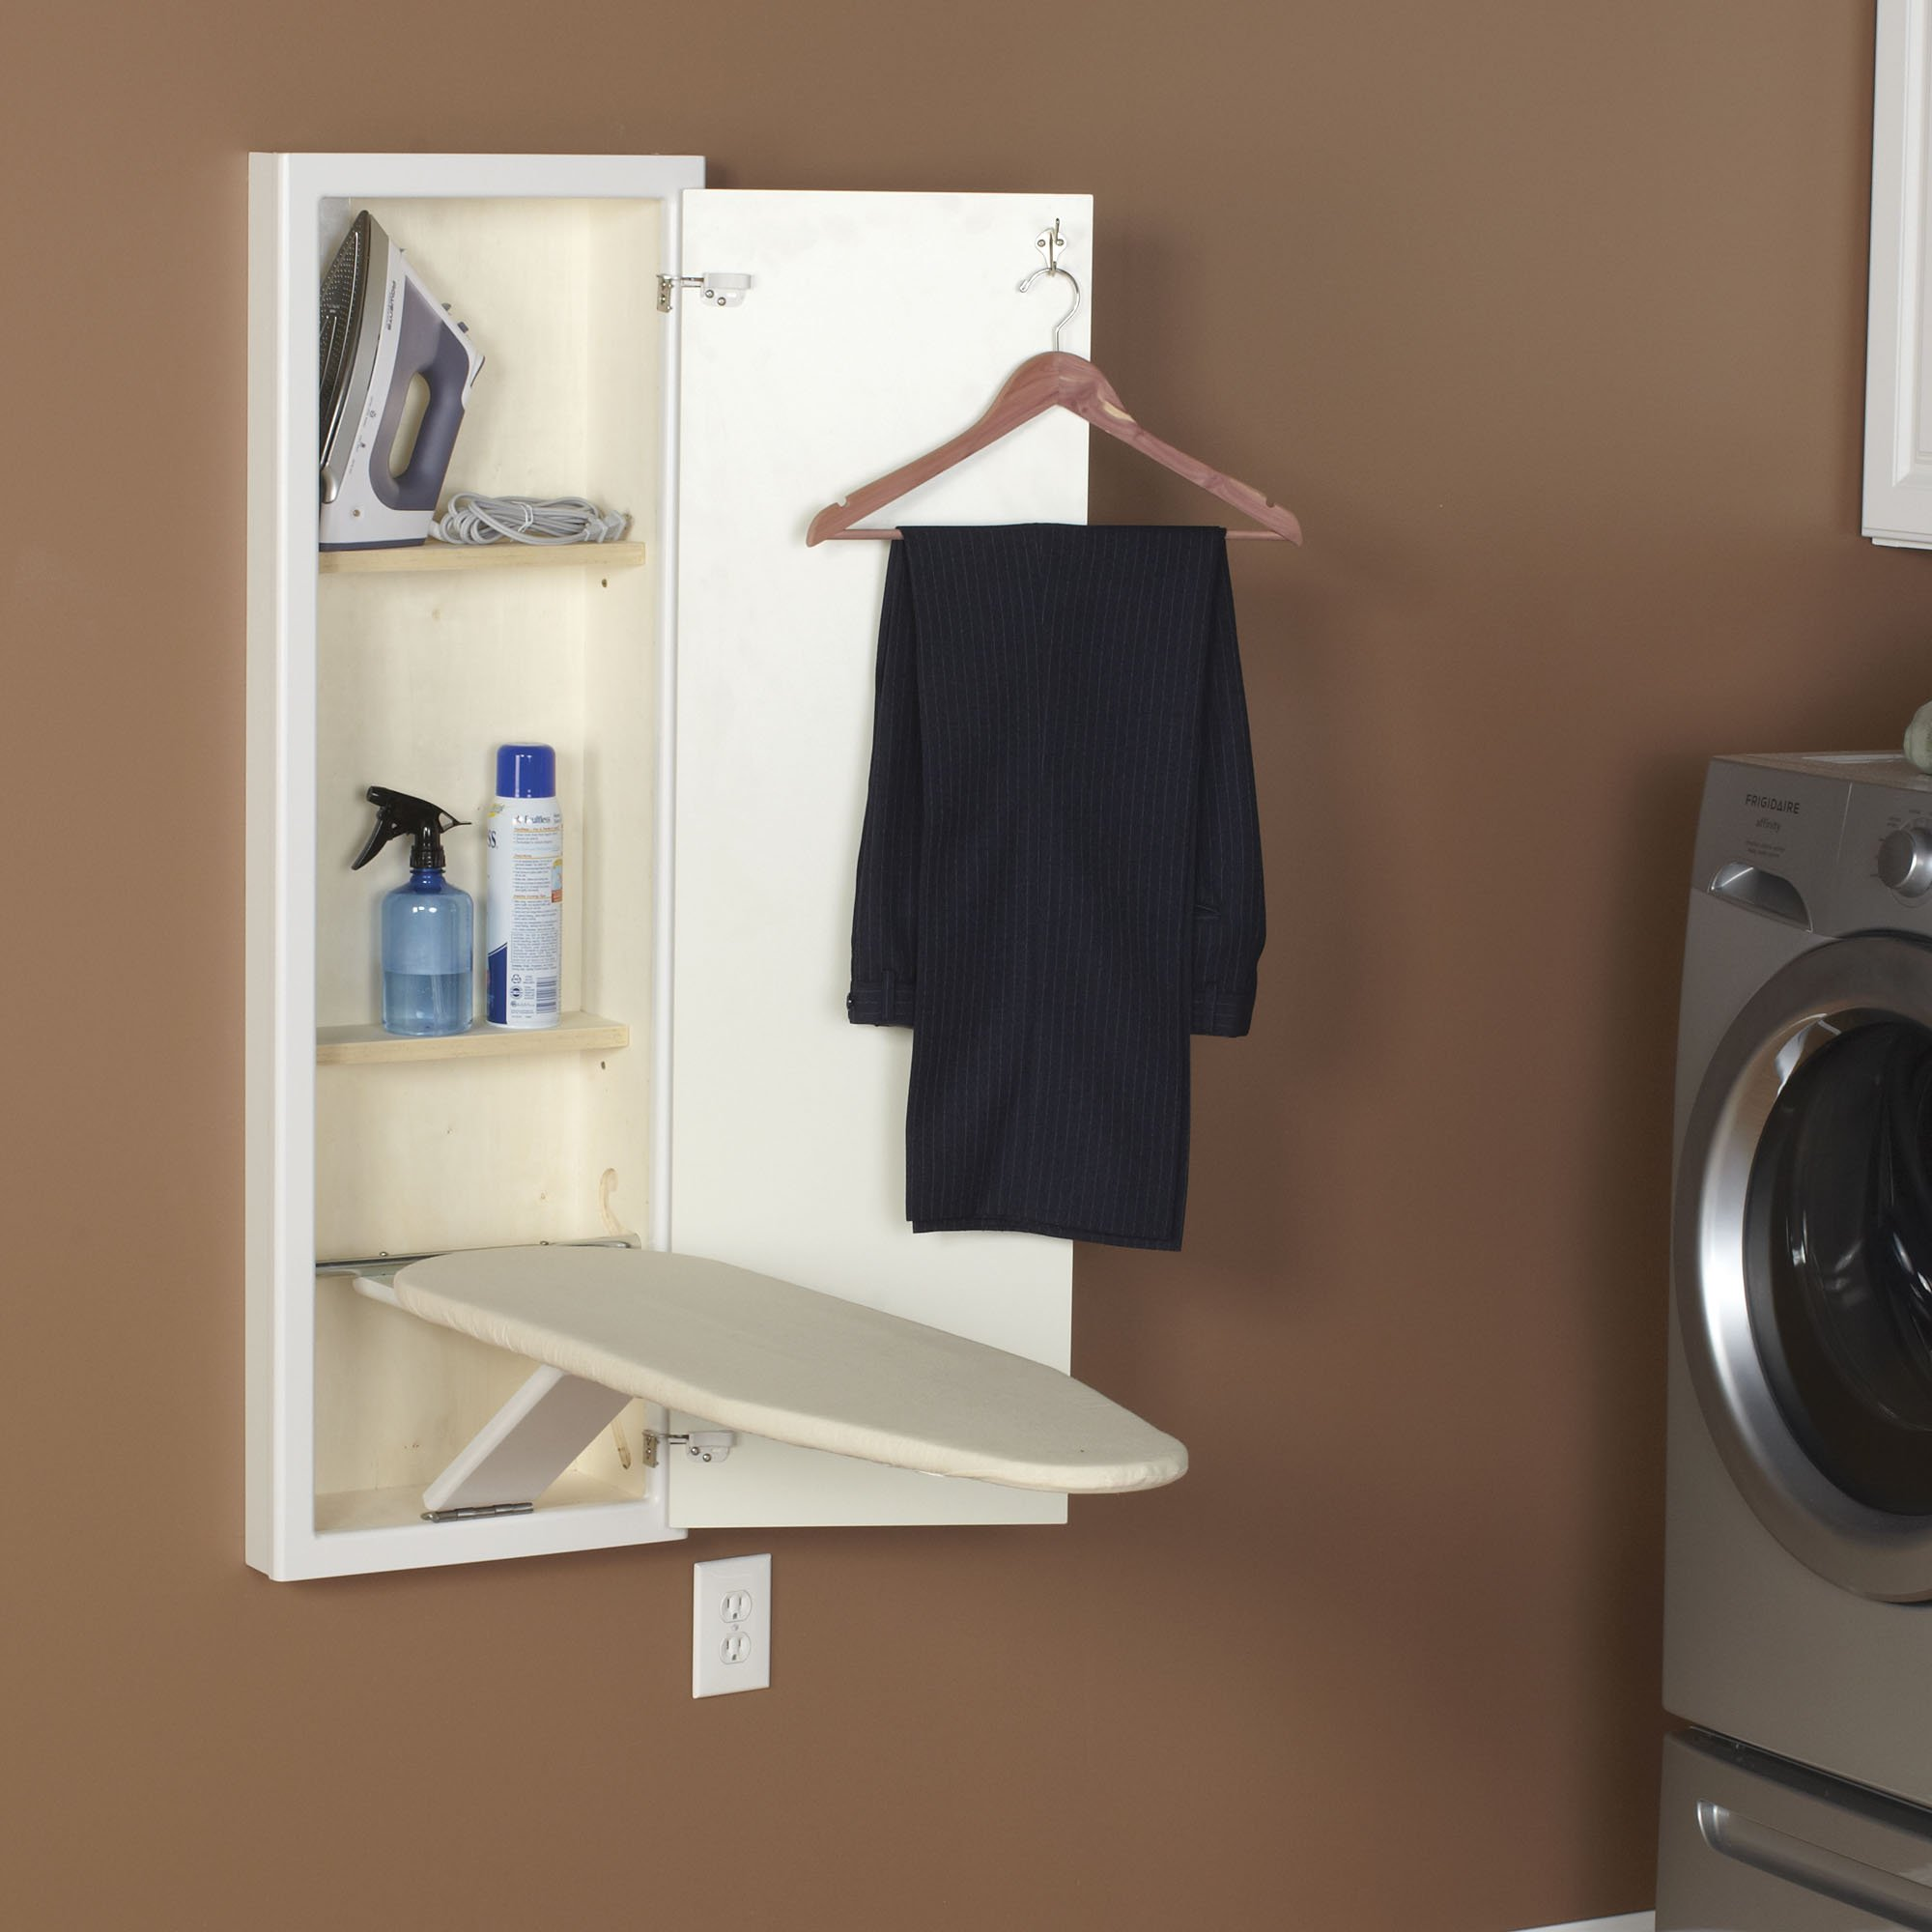 Household Essentials 18100-1 StowAway In-Wall Ironing Board Cabinet with Built In Ironing Board | White | Cut into Wall to Install by Household Essentials (Image #4)